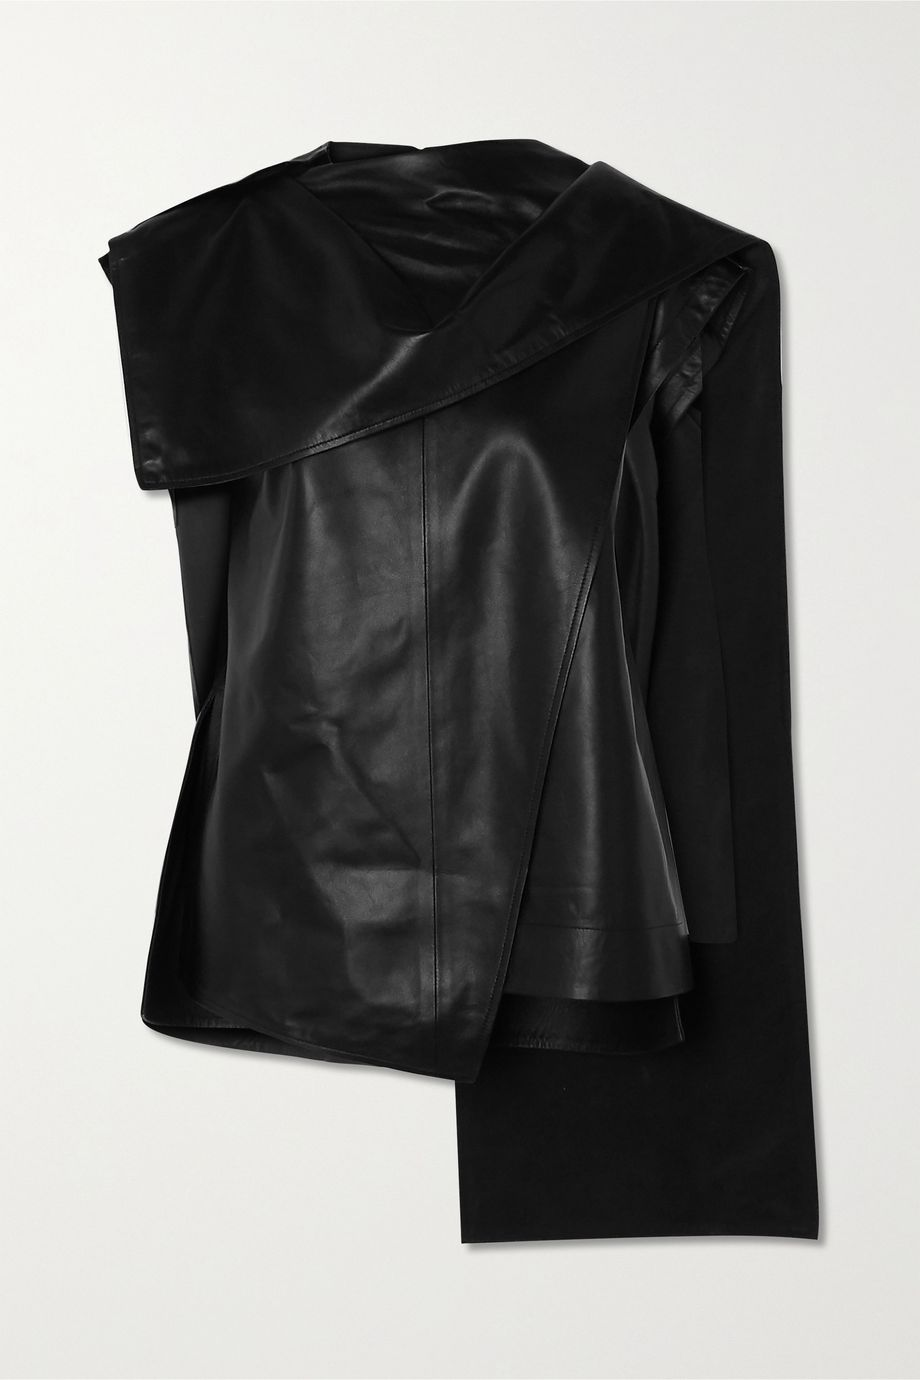 Proenza Schouler Draped leather top